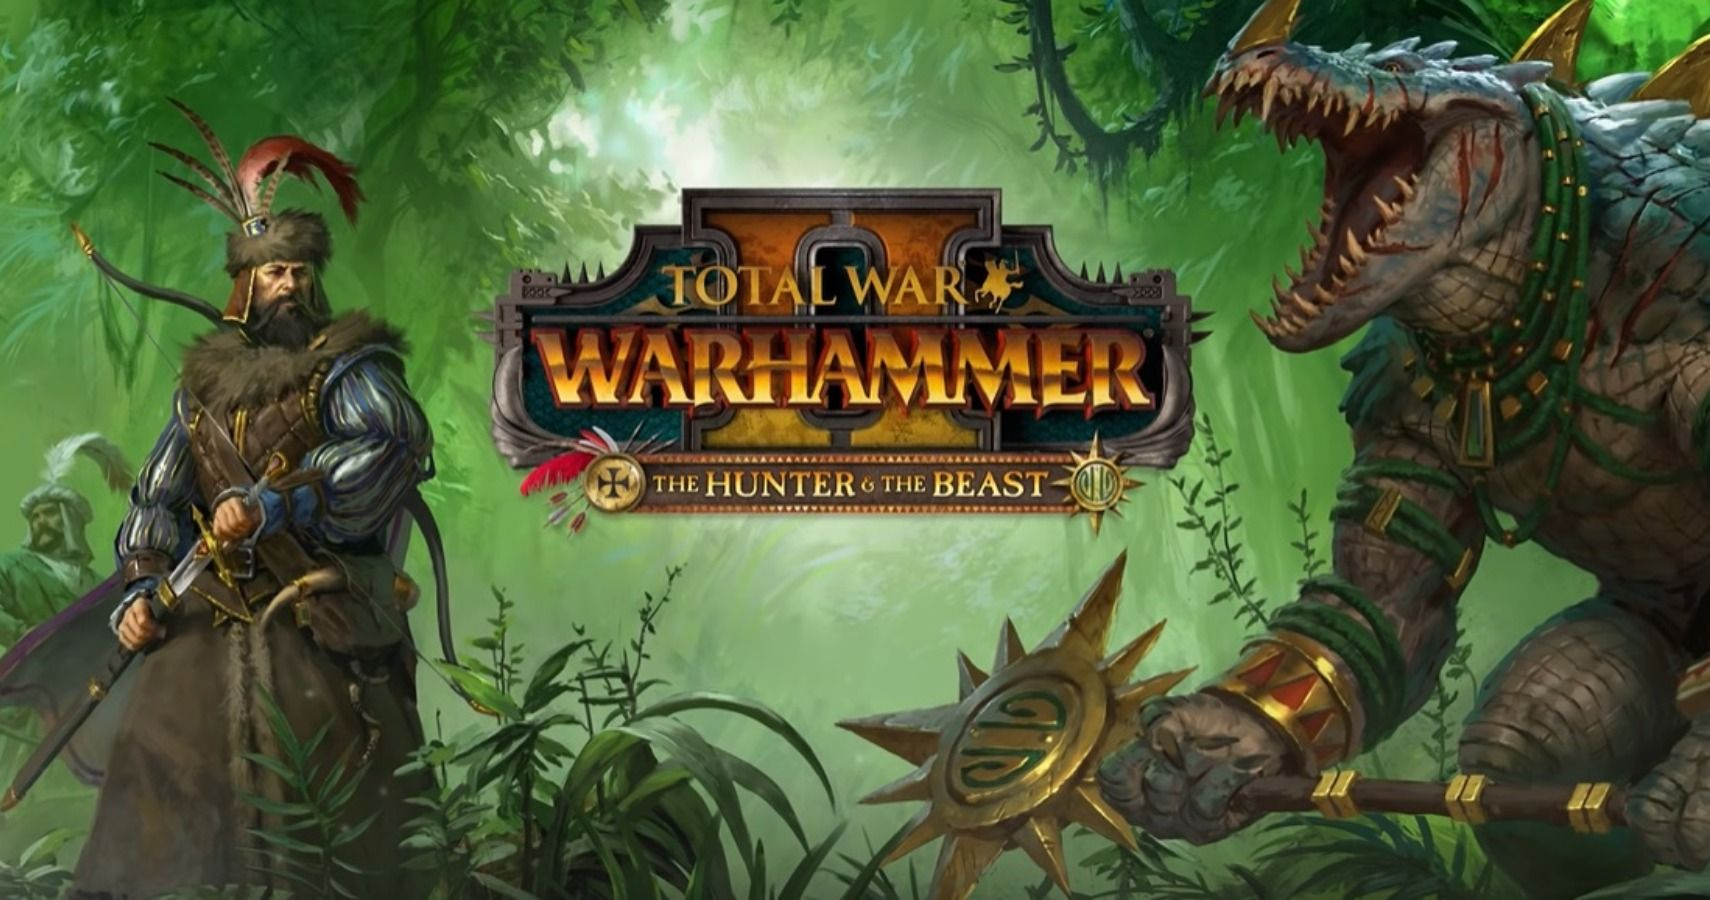 Total War Warhammer 2 The Hunter And The Beast Will Introduce New Lords How to play the new lizardmen lord available in the hunter and the. total war warhammer 2 the hunter and